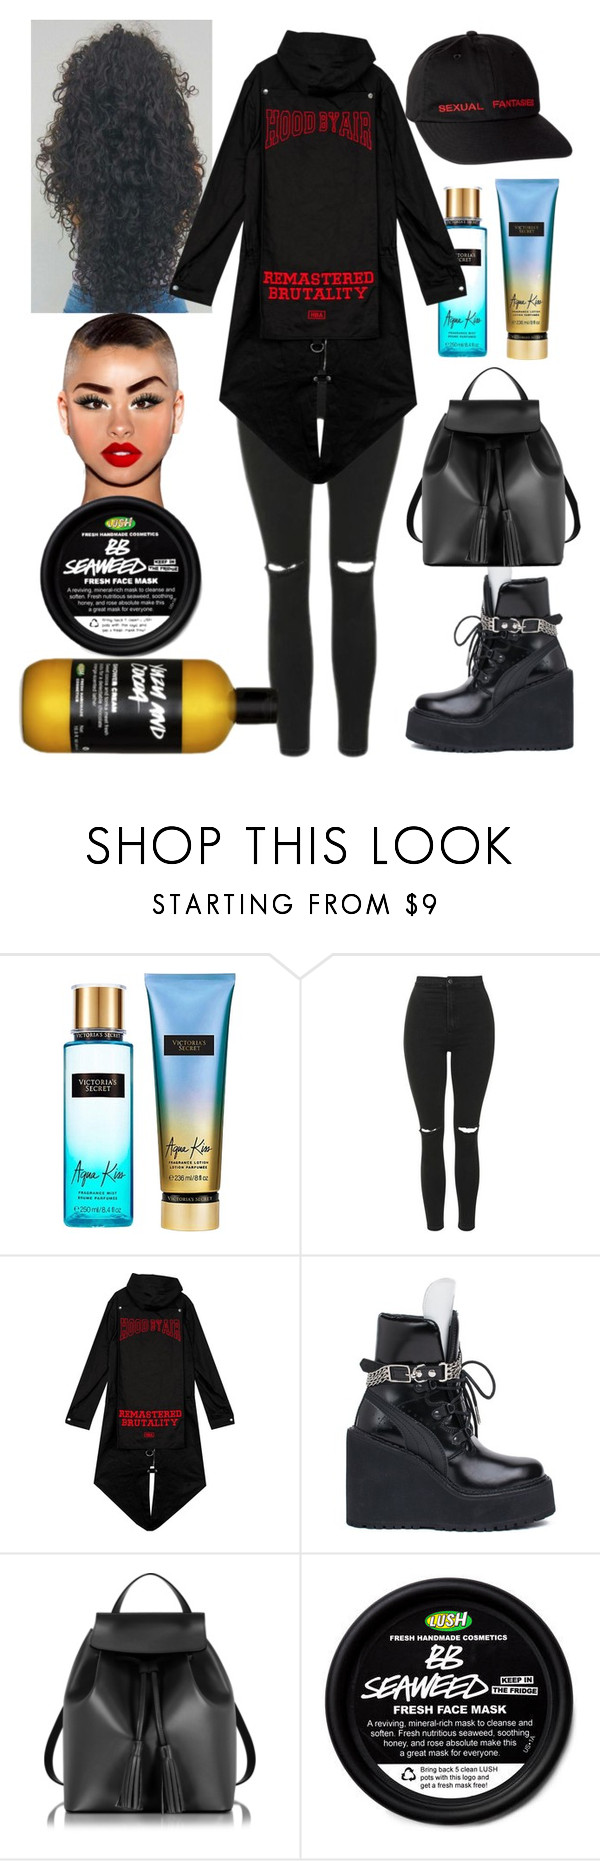 """Chicago: June 28"" by allison-syko ❤ liked on Polyvore featuring Victoria's Secret, Topshop, Puma and Le Parmentier"